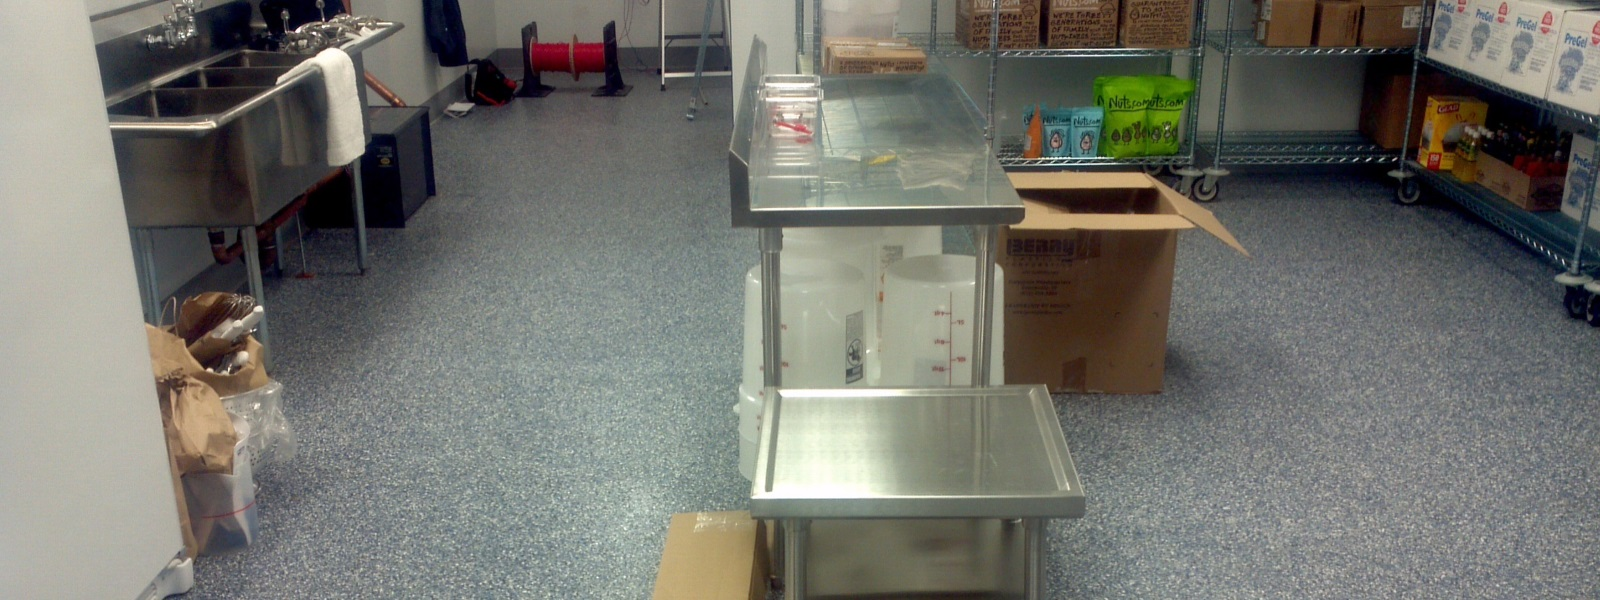 commercial kitchen floors commercial kitchen flooring Next